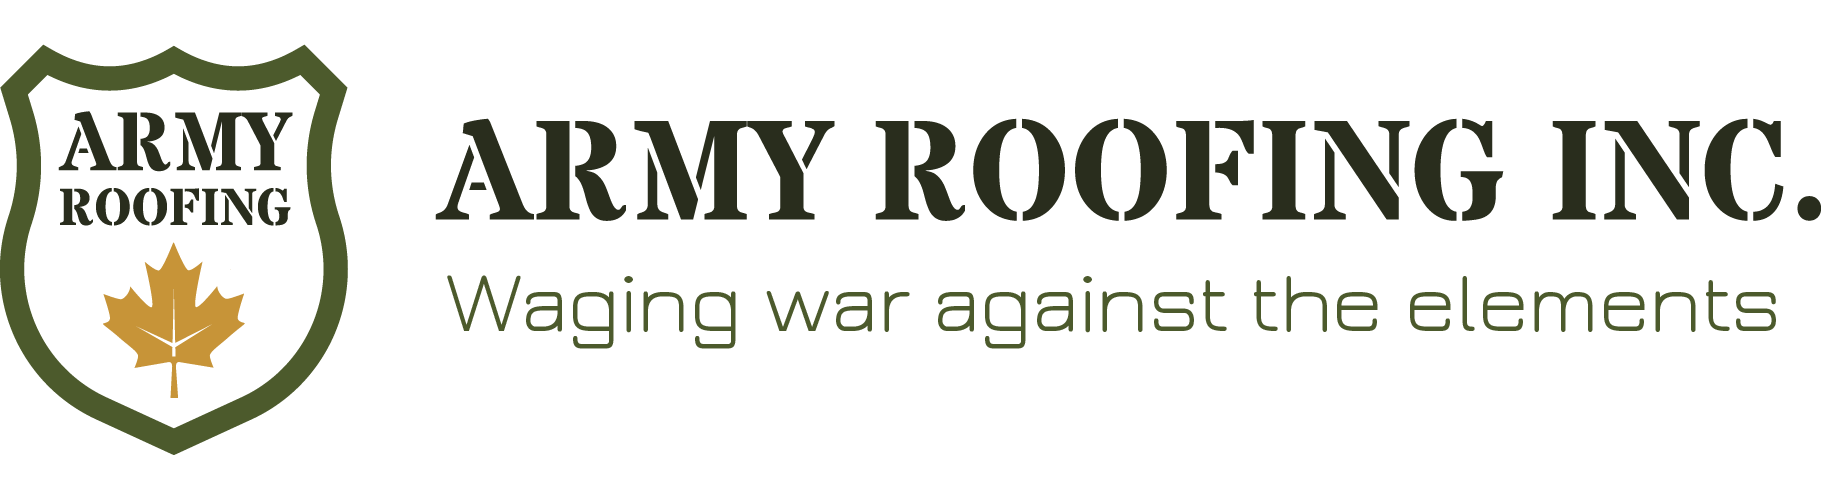 ARMY ROOFING INC.